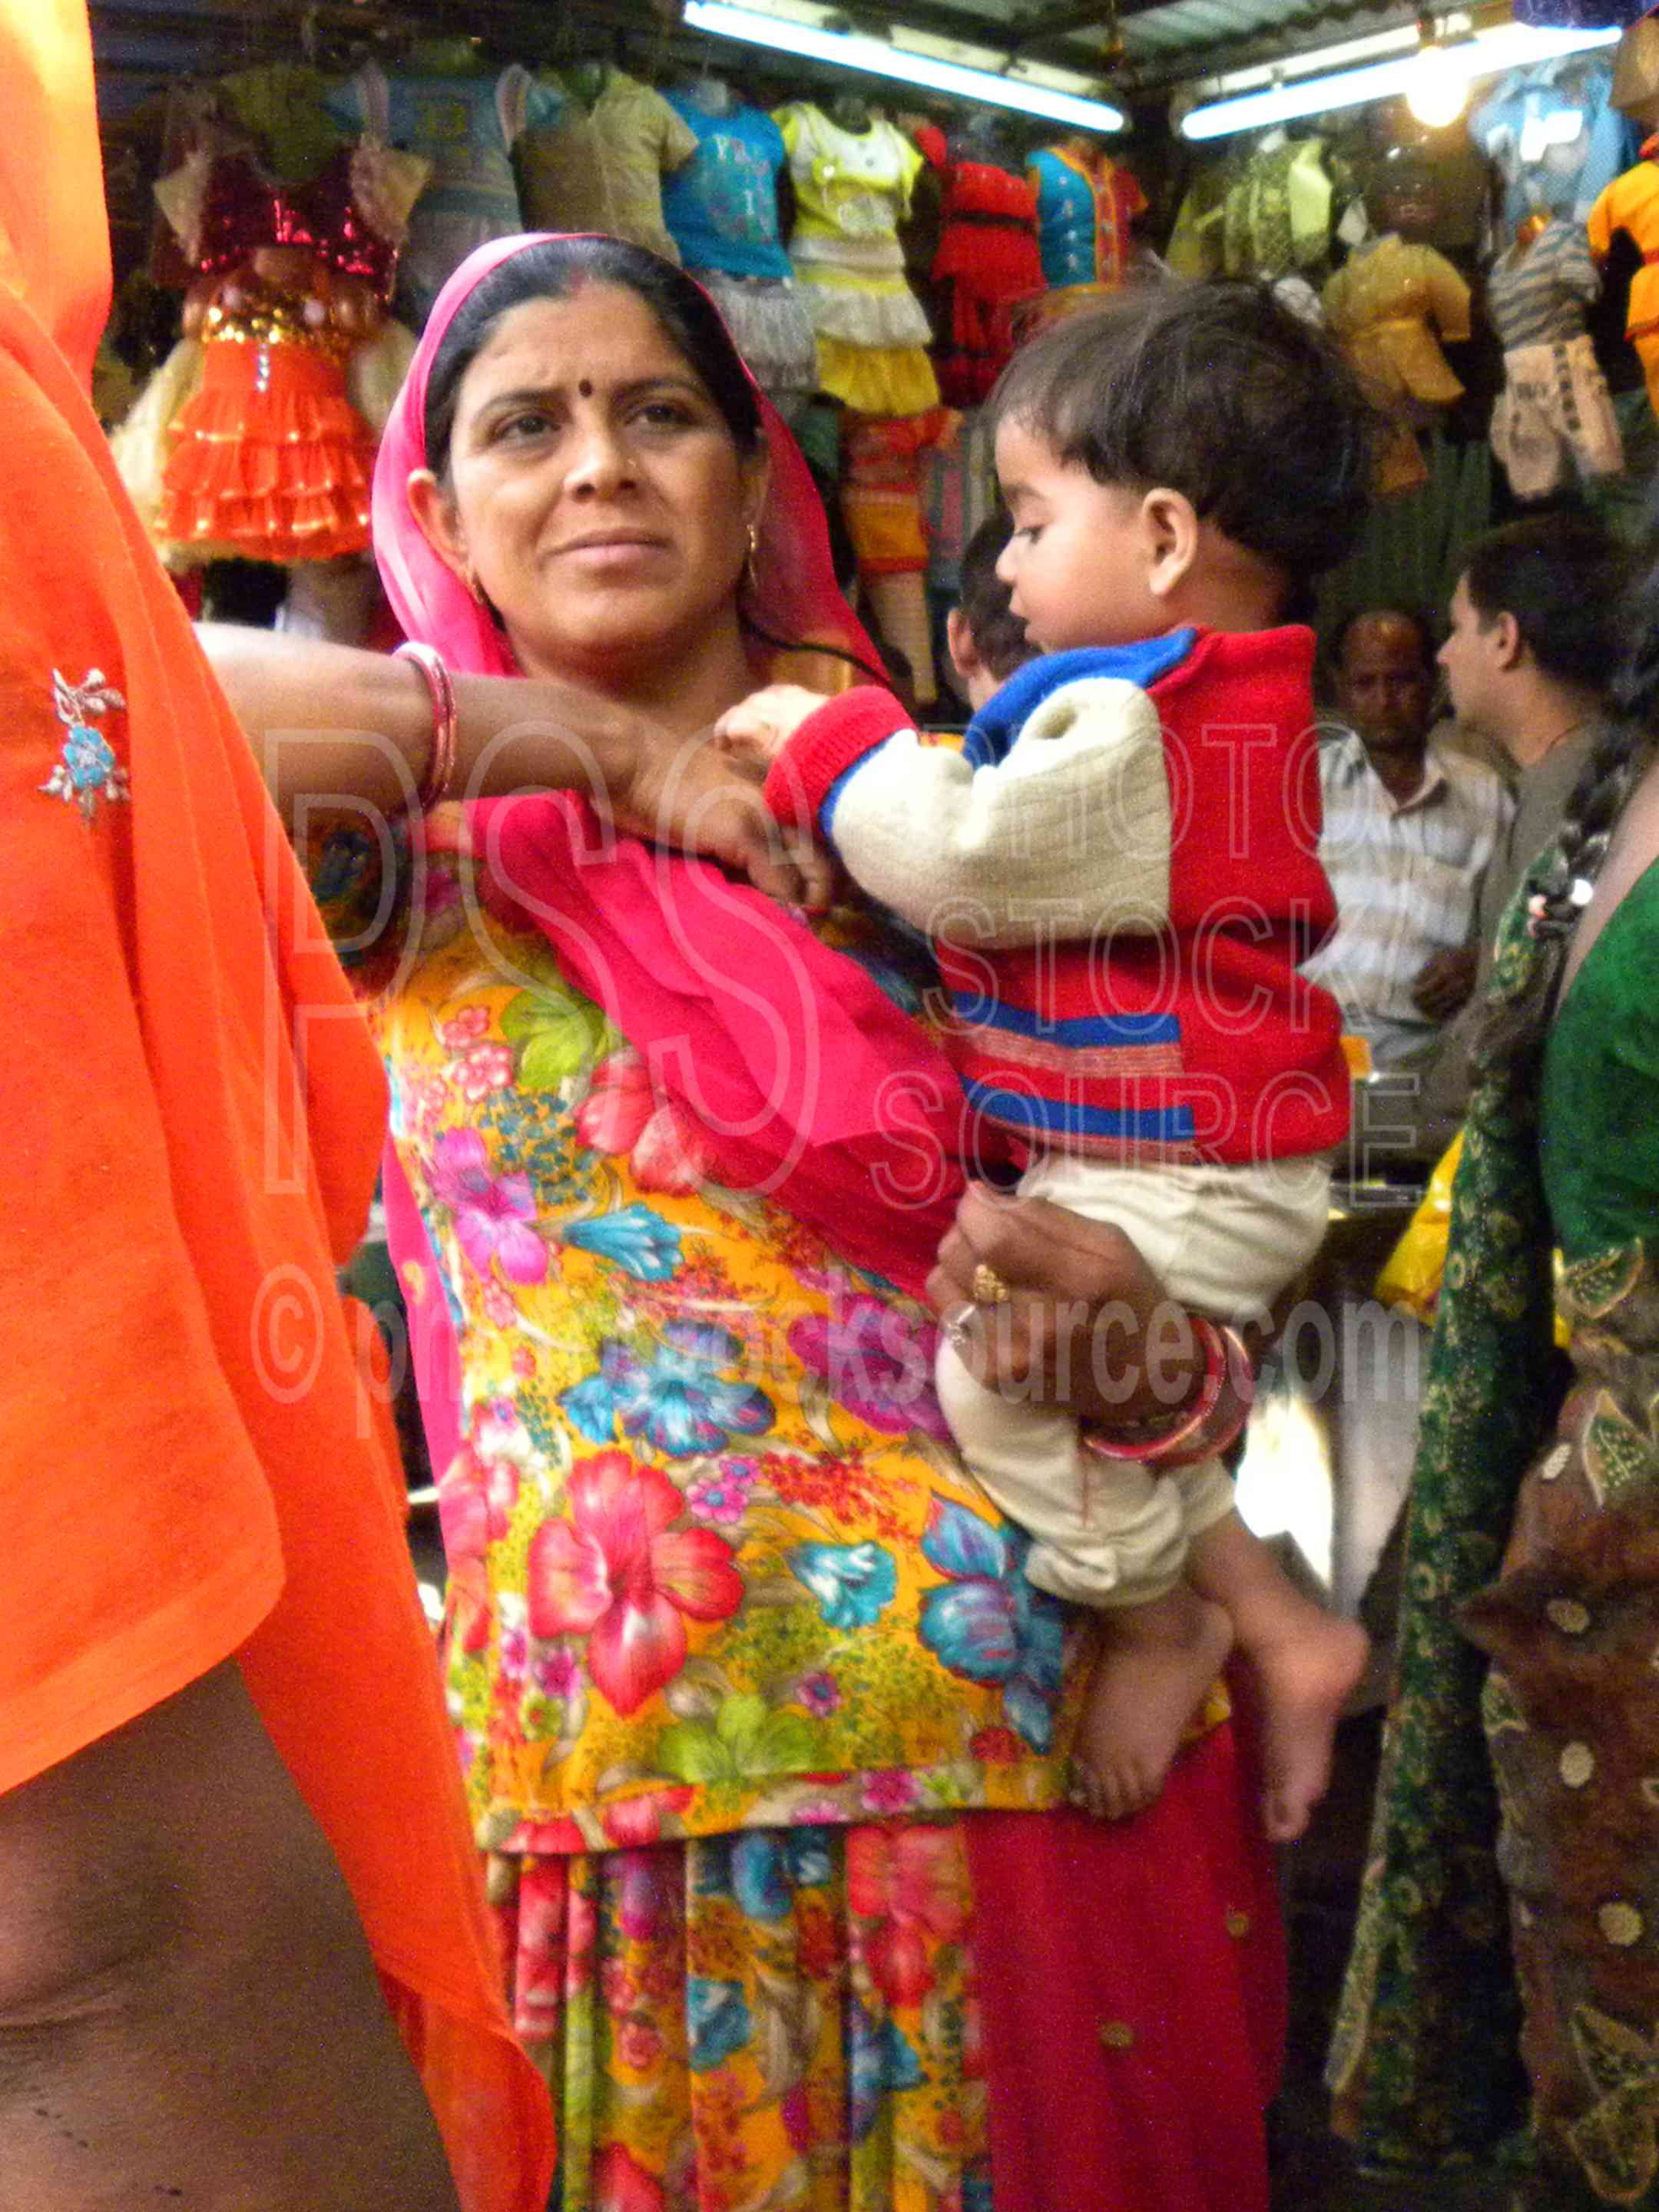 Woman with Child,woman,shopping,children